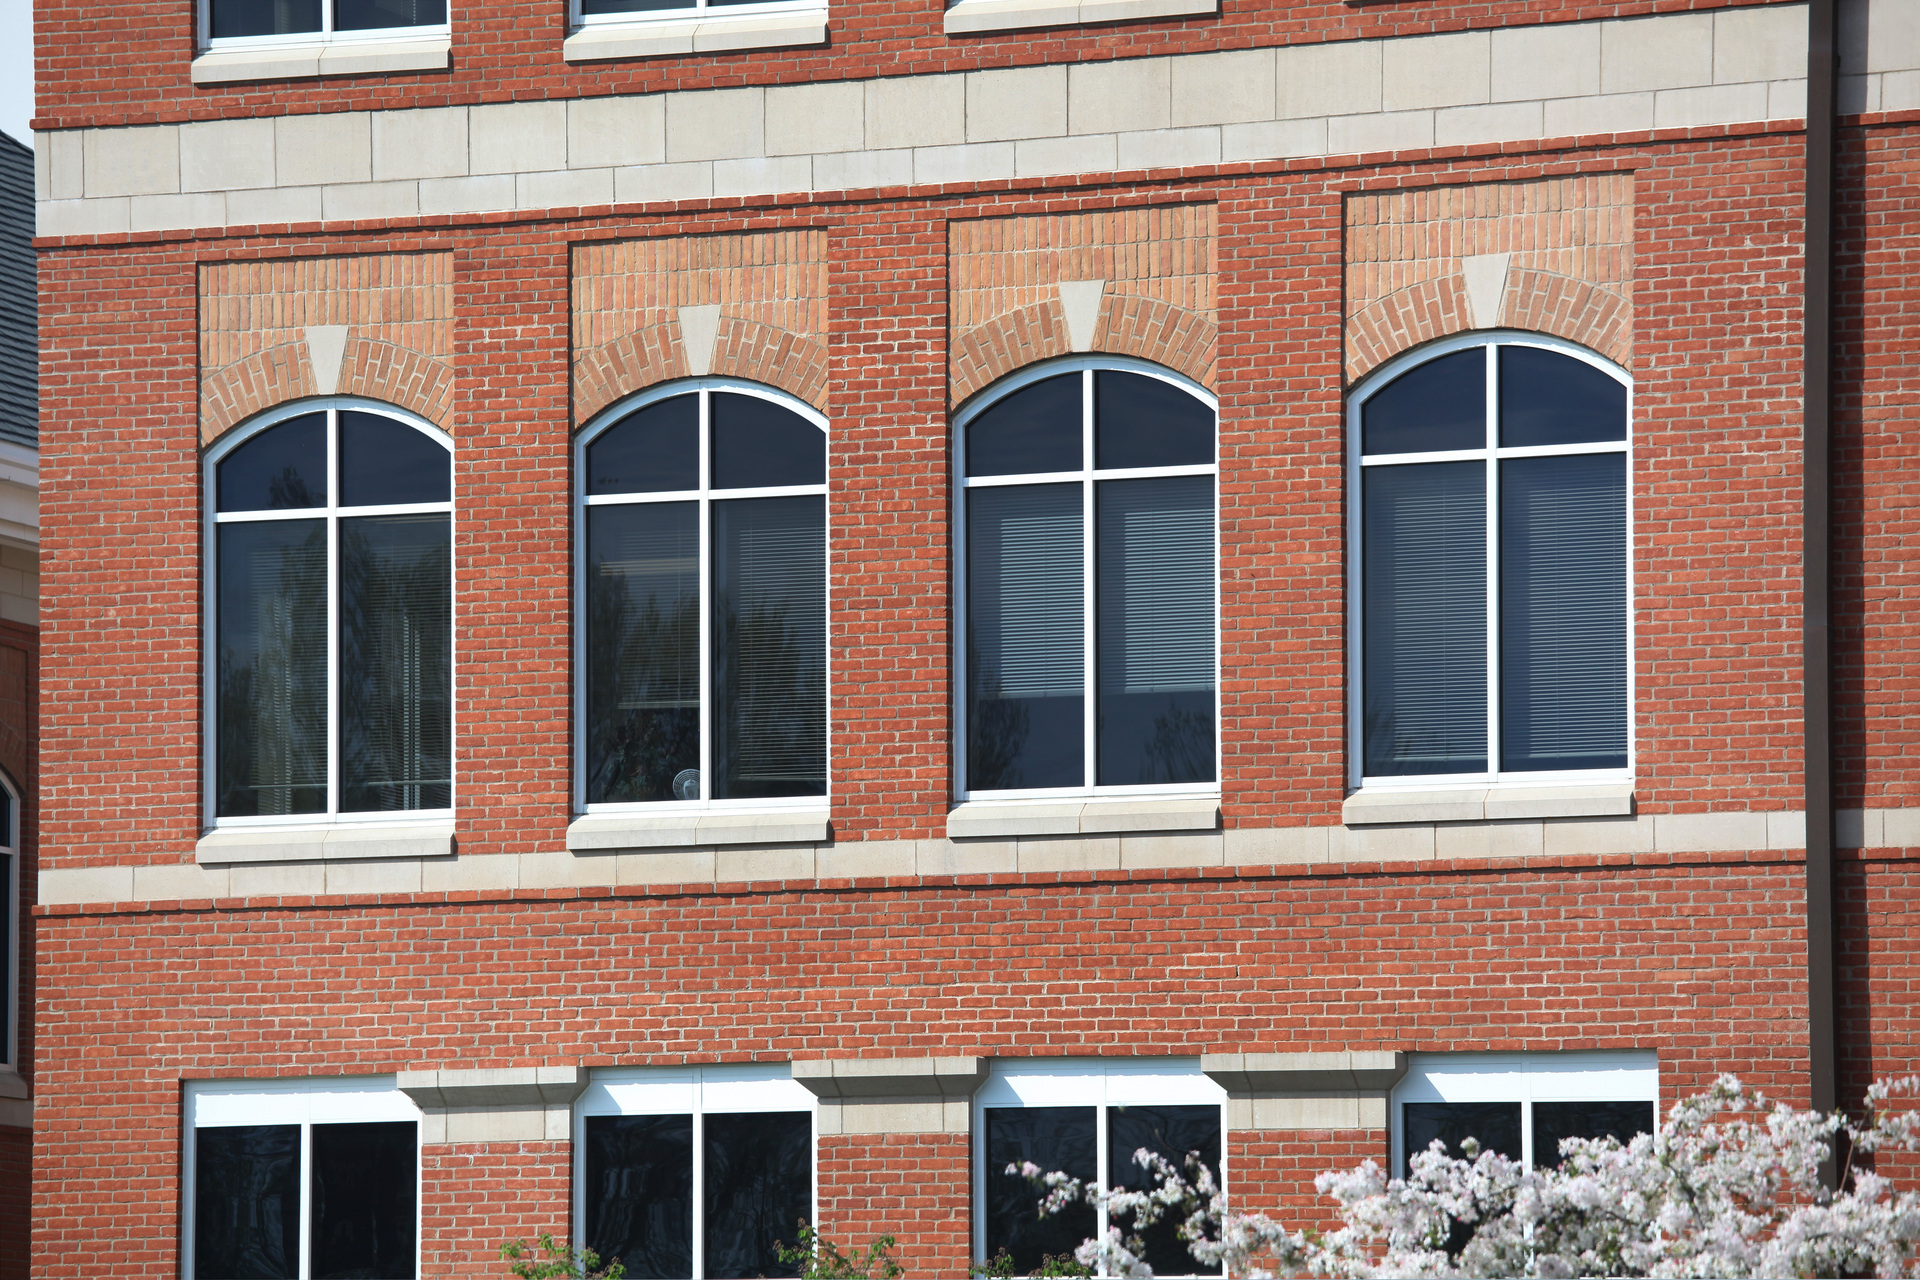 The Belden Brick Company used their Belcrest Brick Color for the exterior of the Mount Carmel Medical Center.